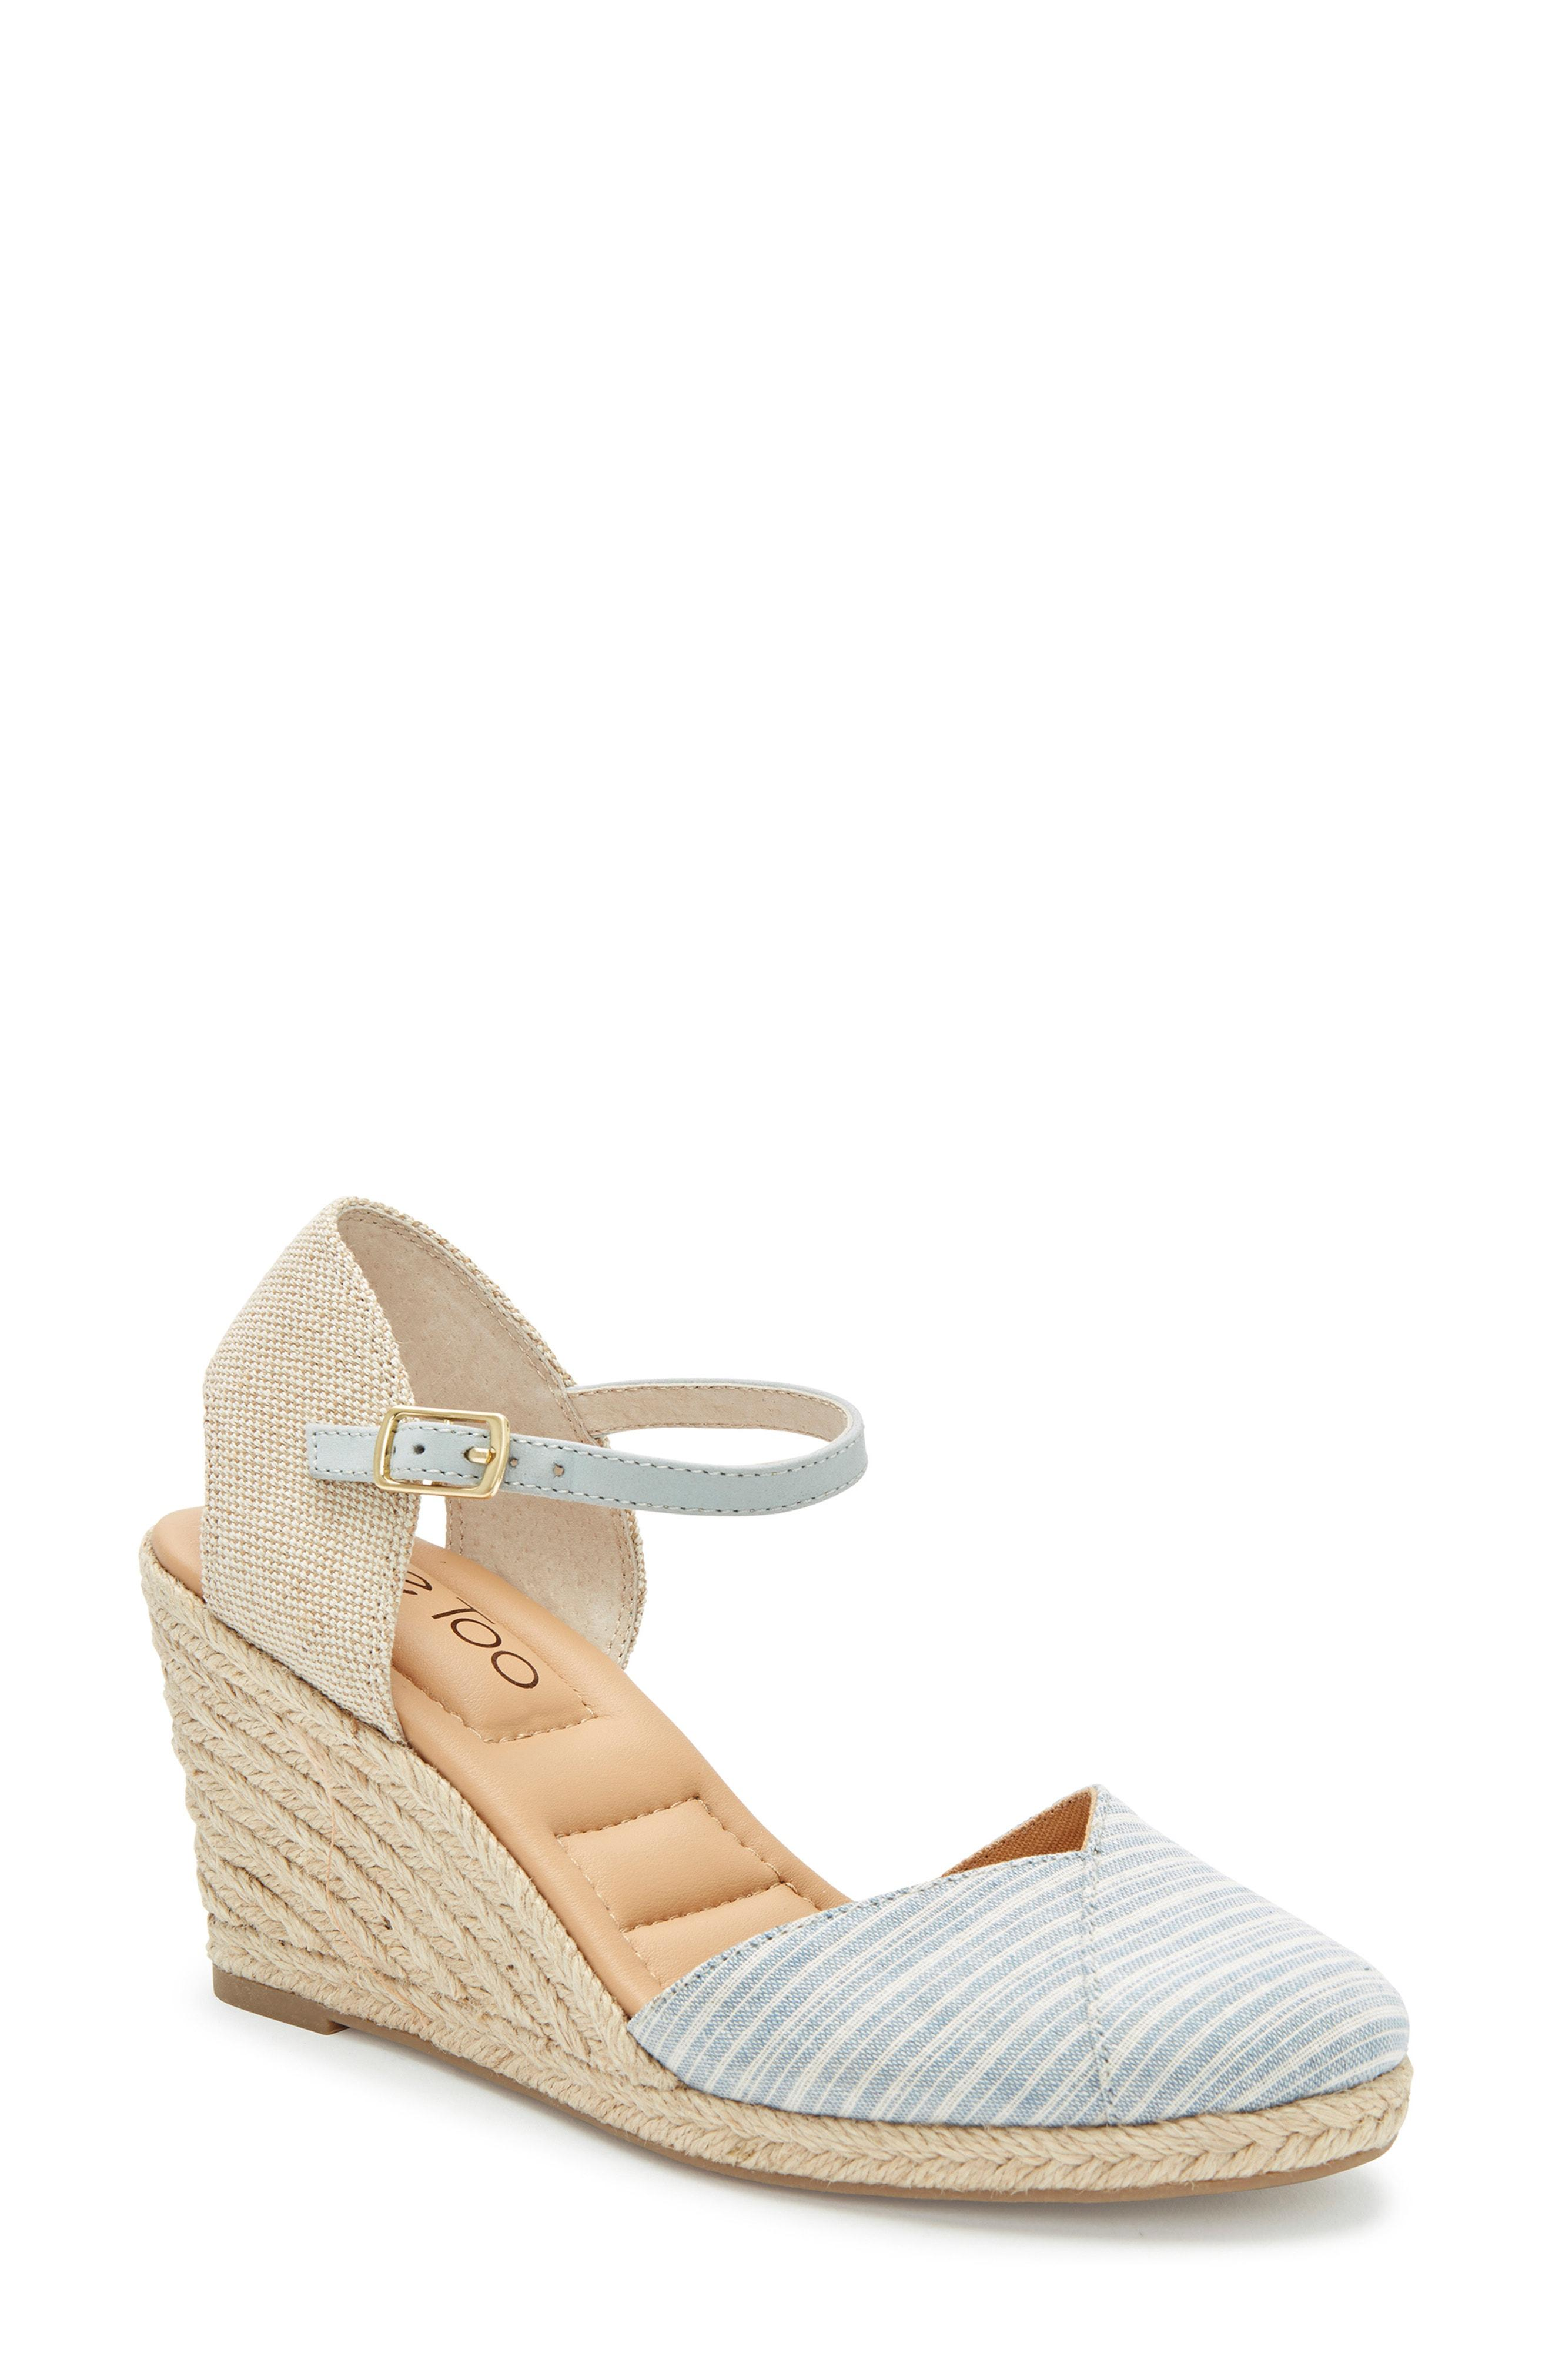 Me Too. Women's Brenna Espadrille Wedge Sandal